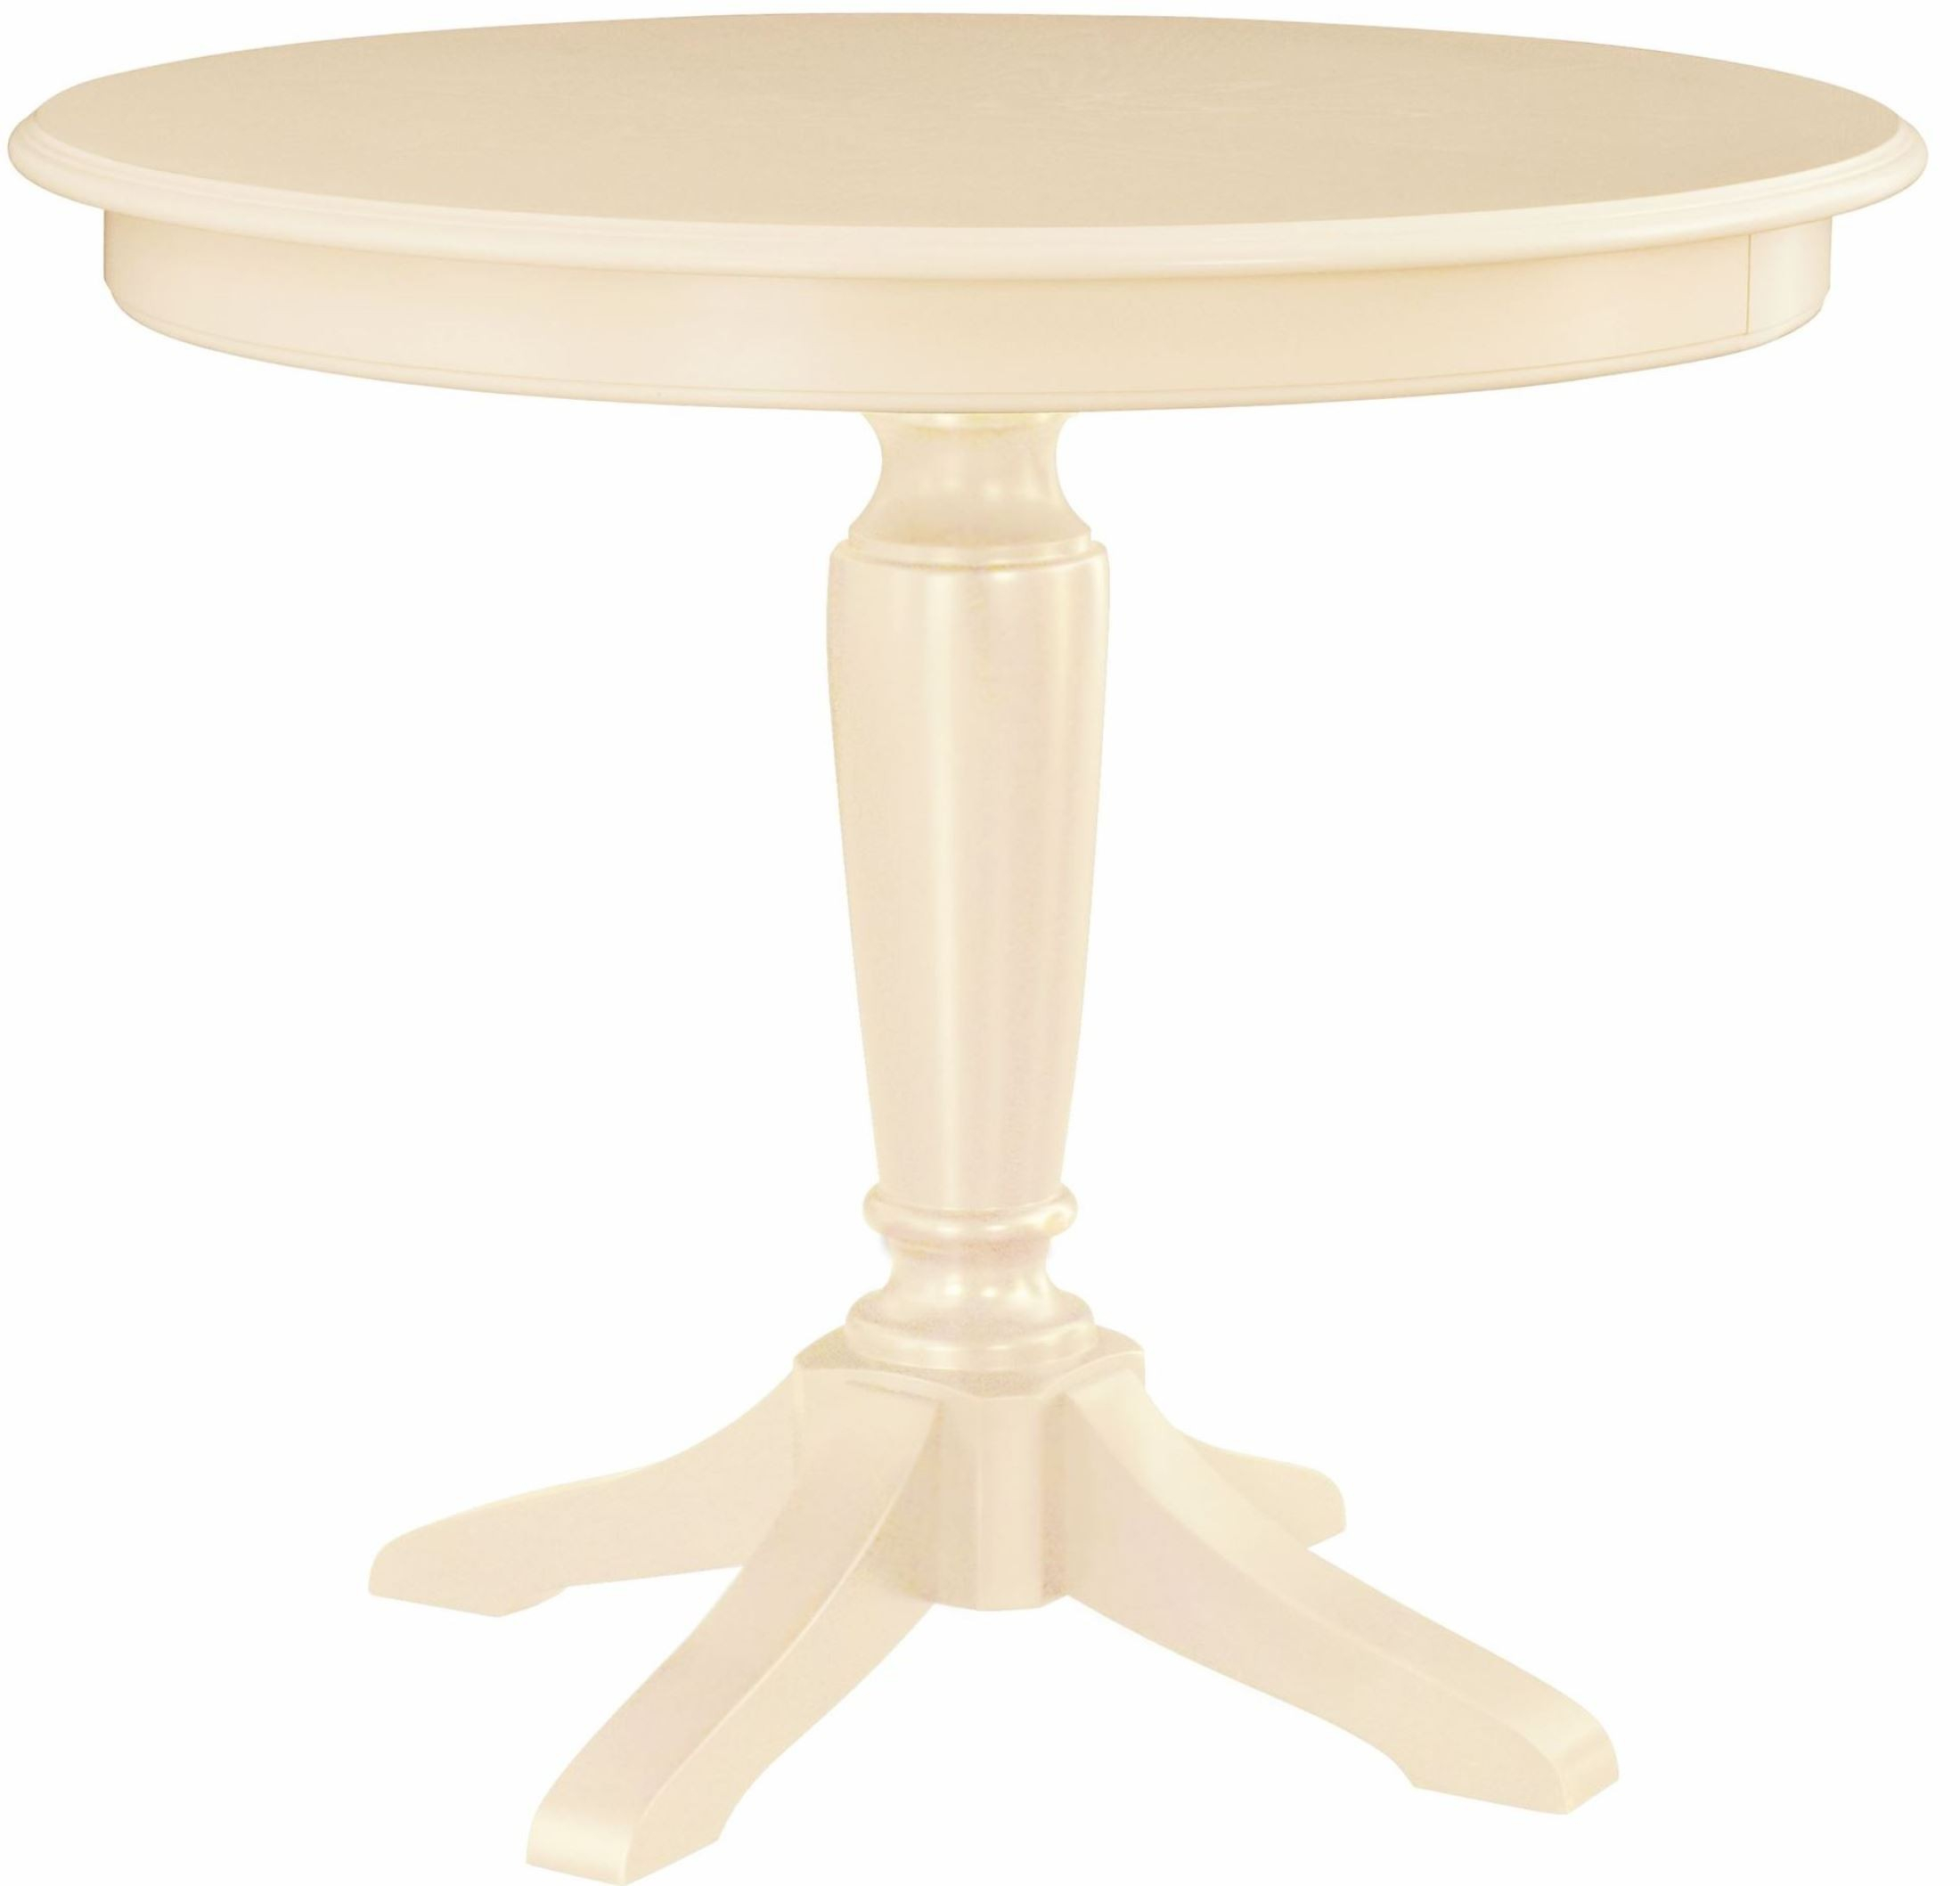 Camden Buttermilk Round Counter Height Pedestal Dining In Most Up To Date Bushrah Counter Height Pedestal Dining Tables (View 13 of 15)